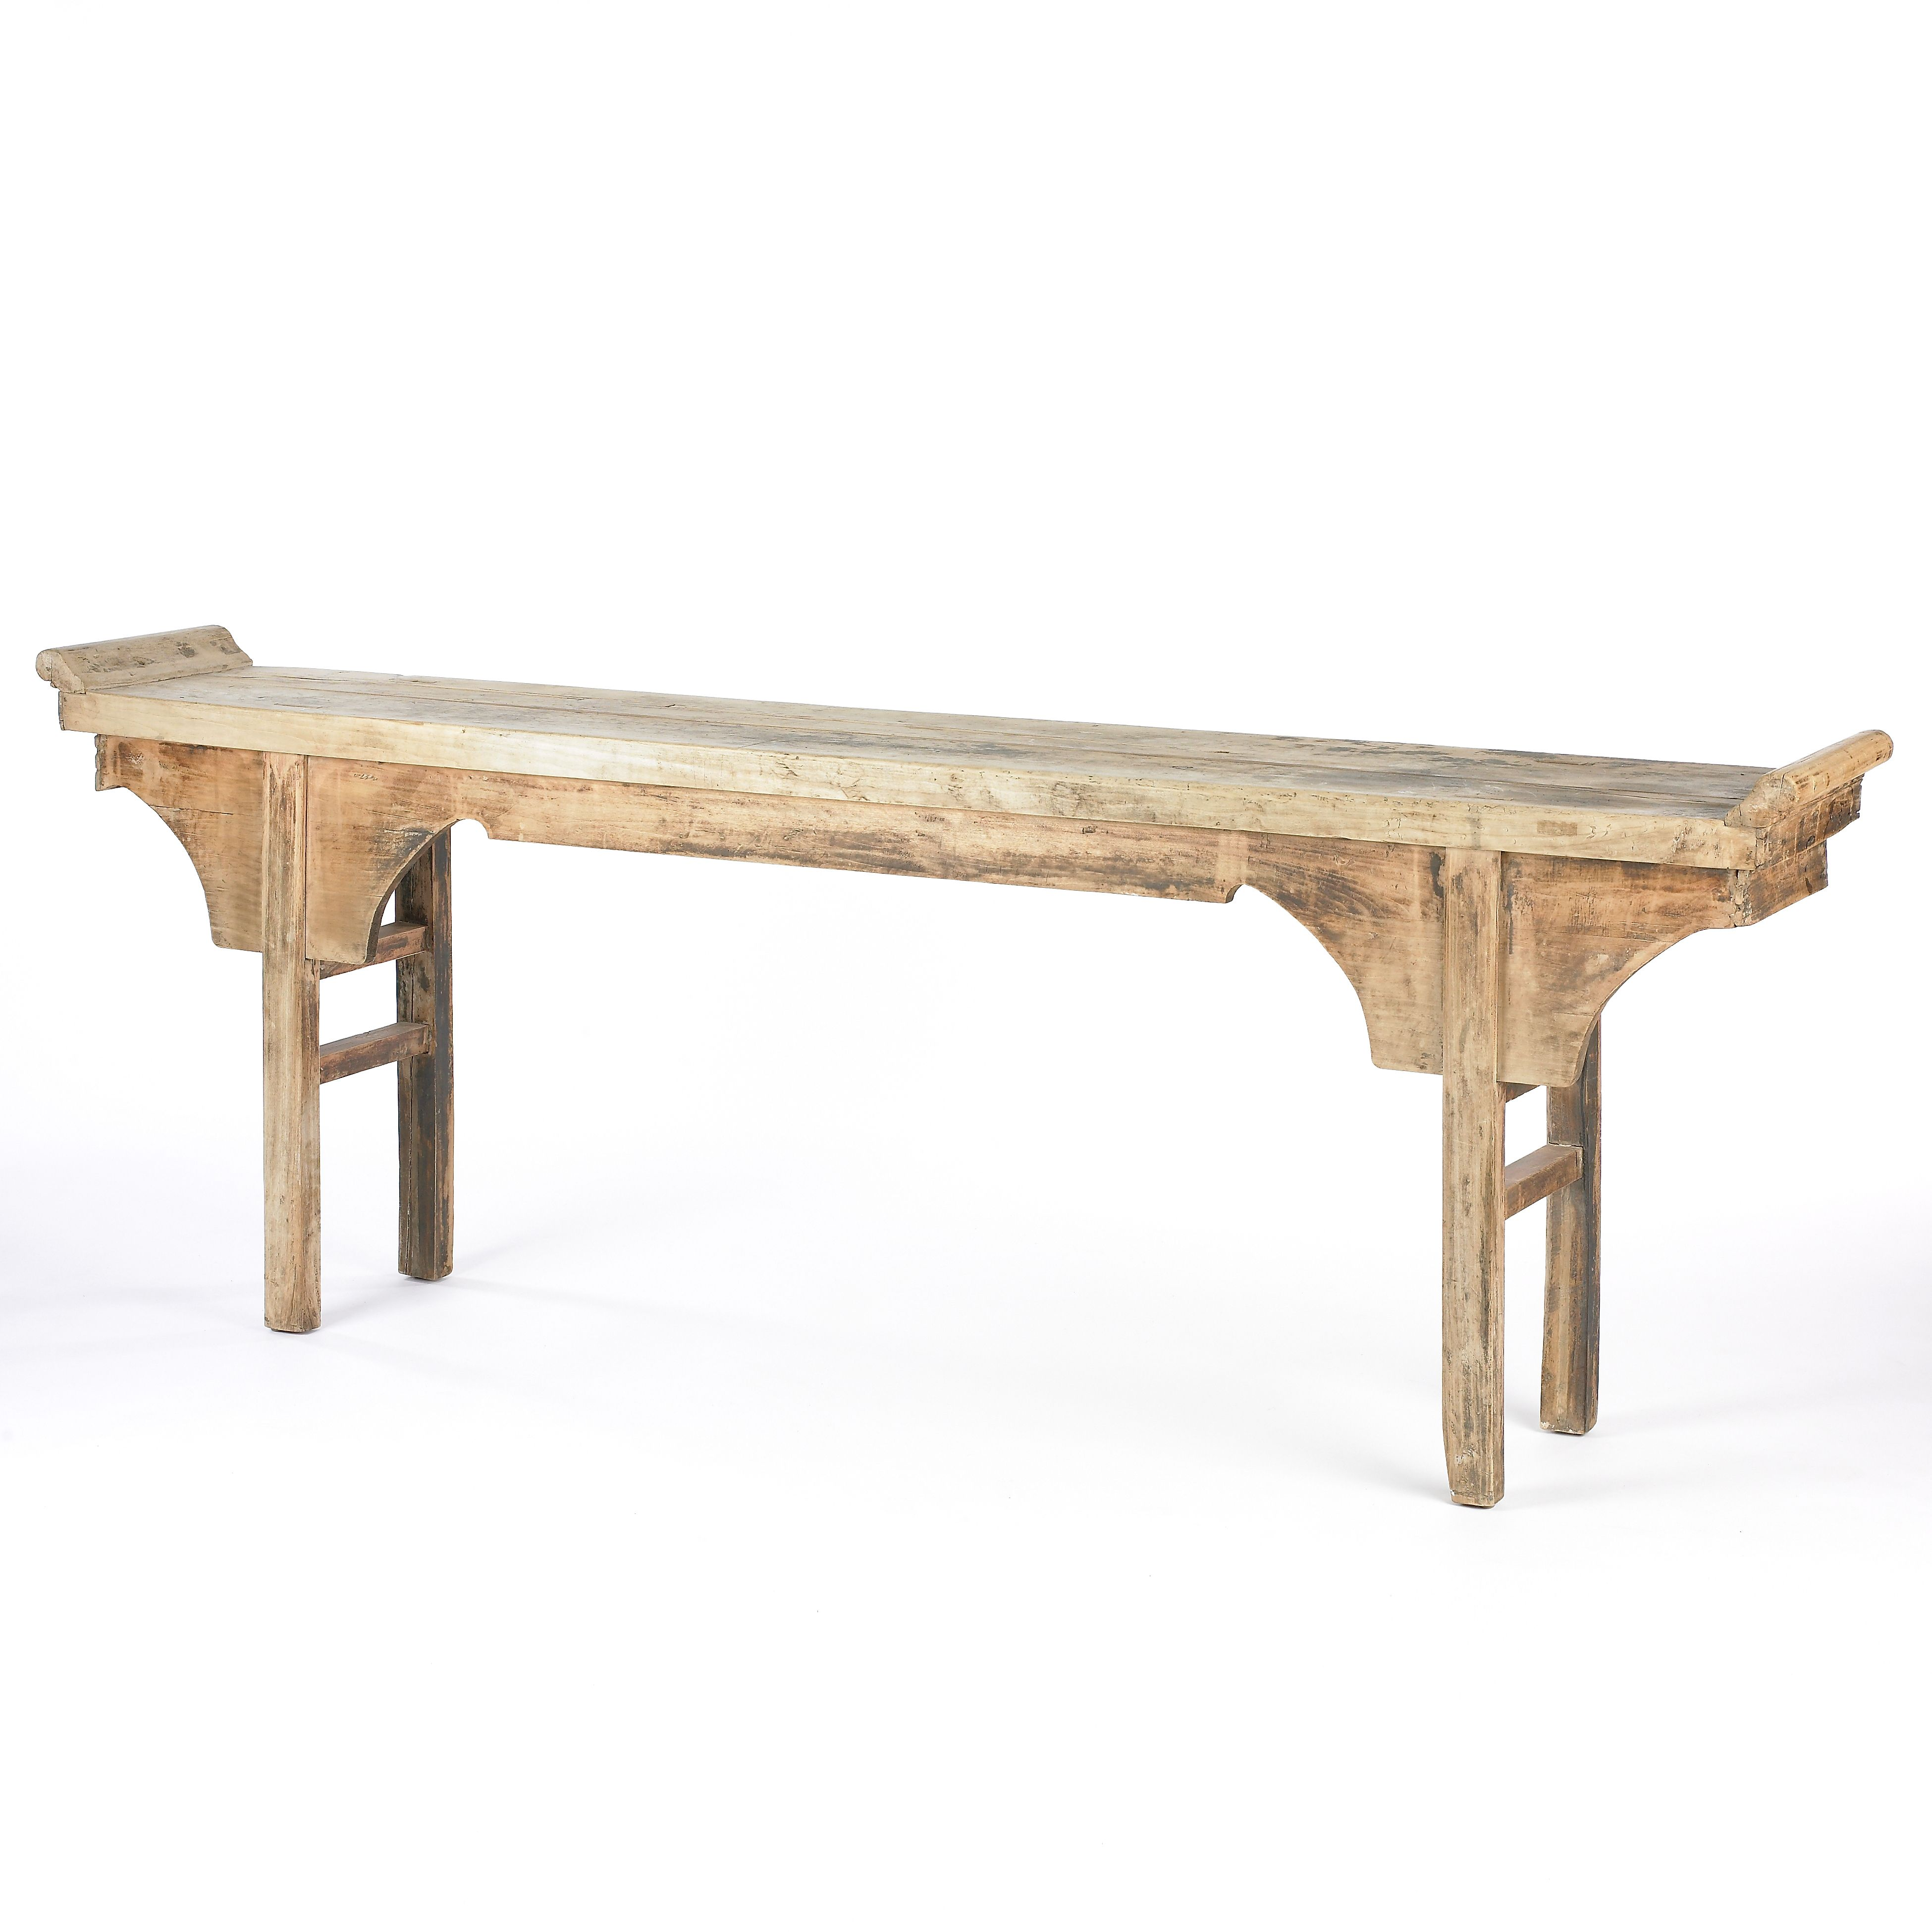 Chinese Altar Table South of Market 96w x 15d x 36d